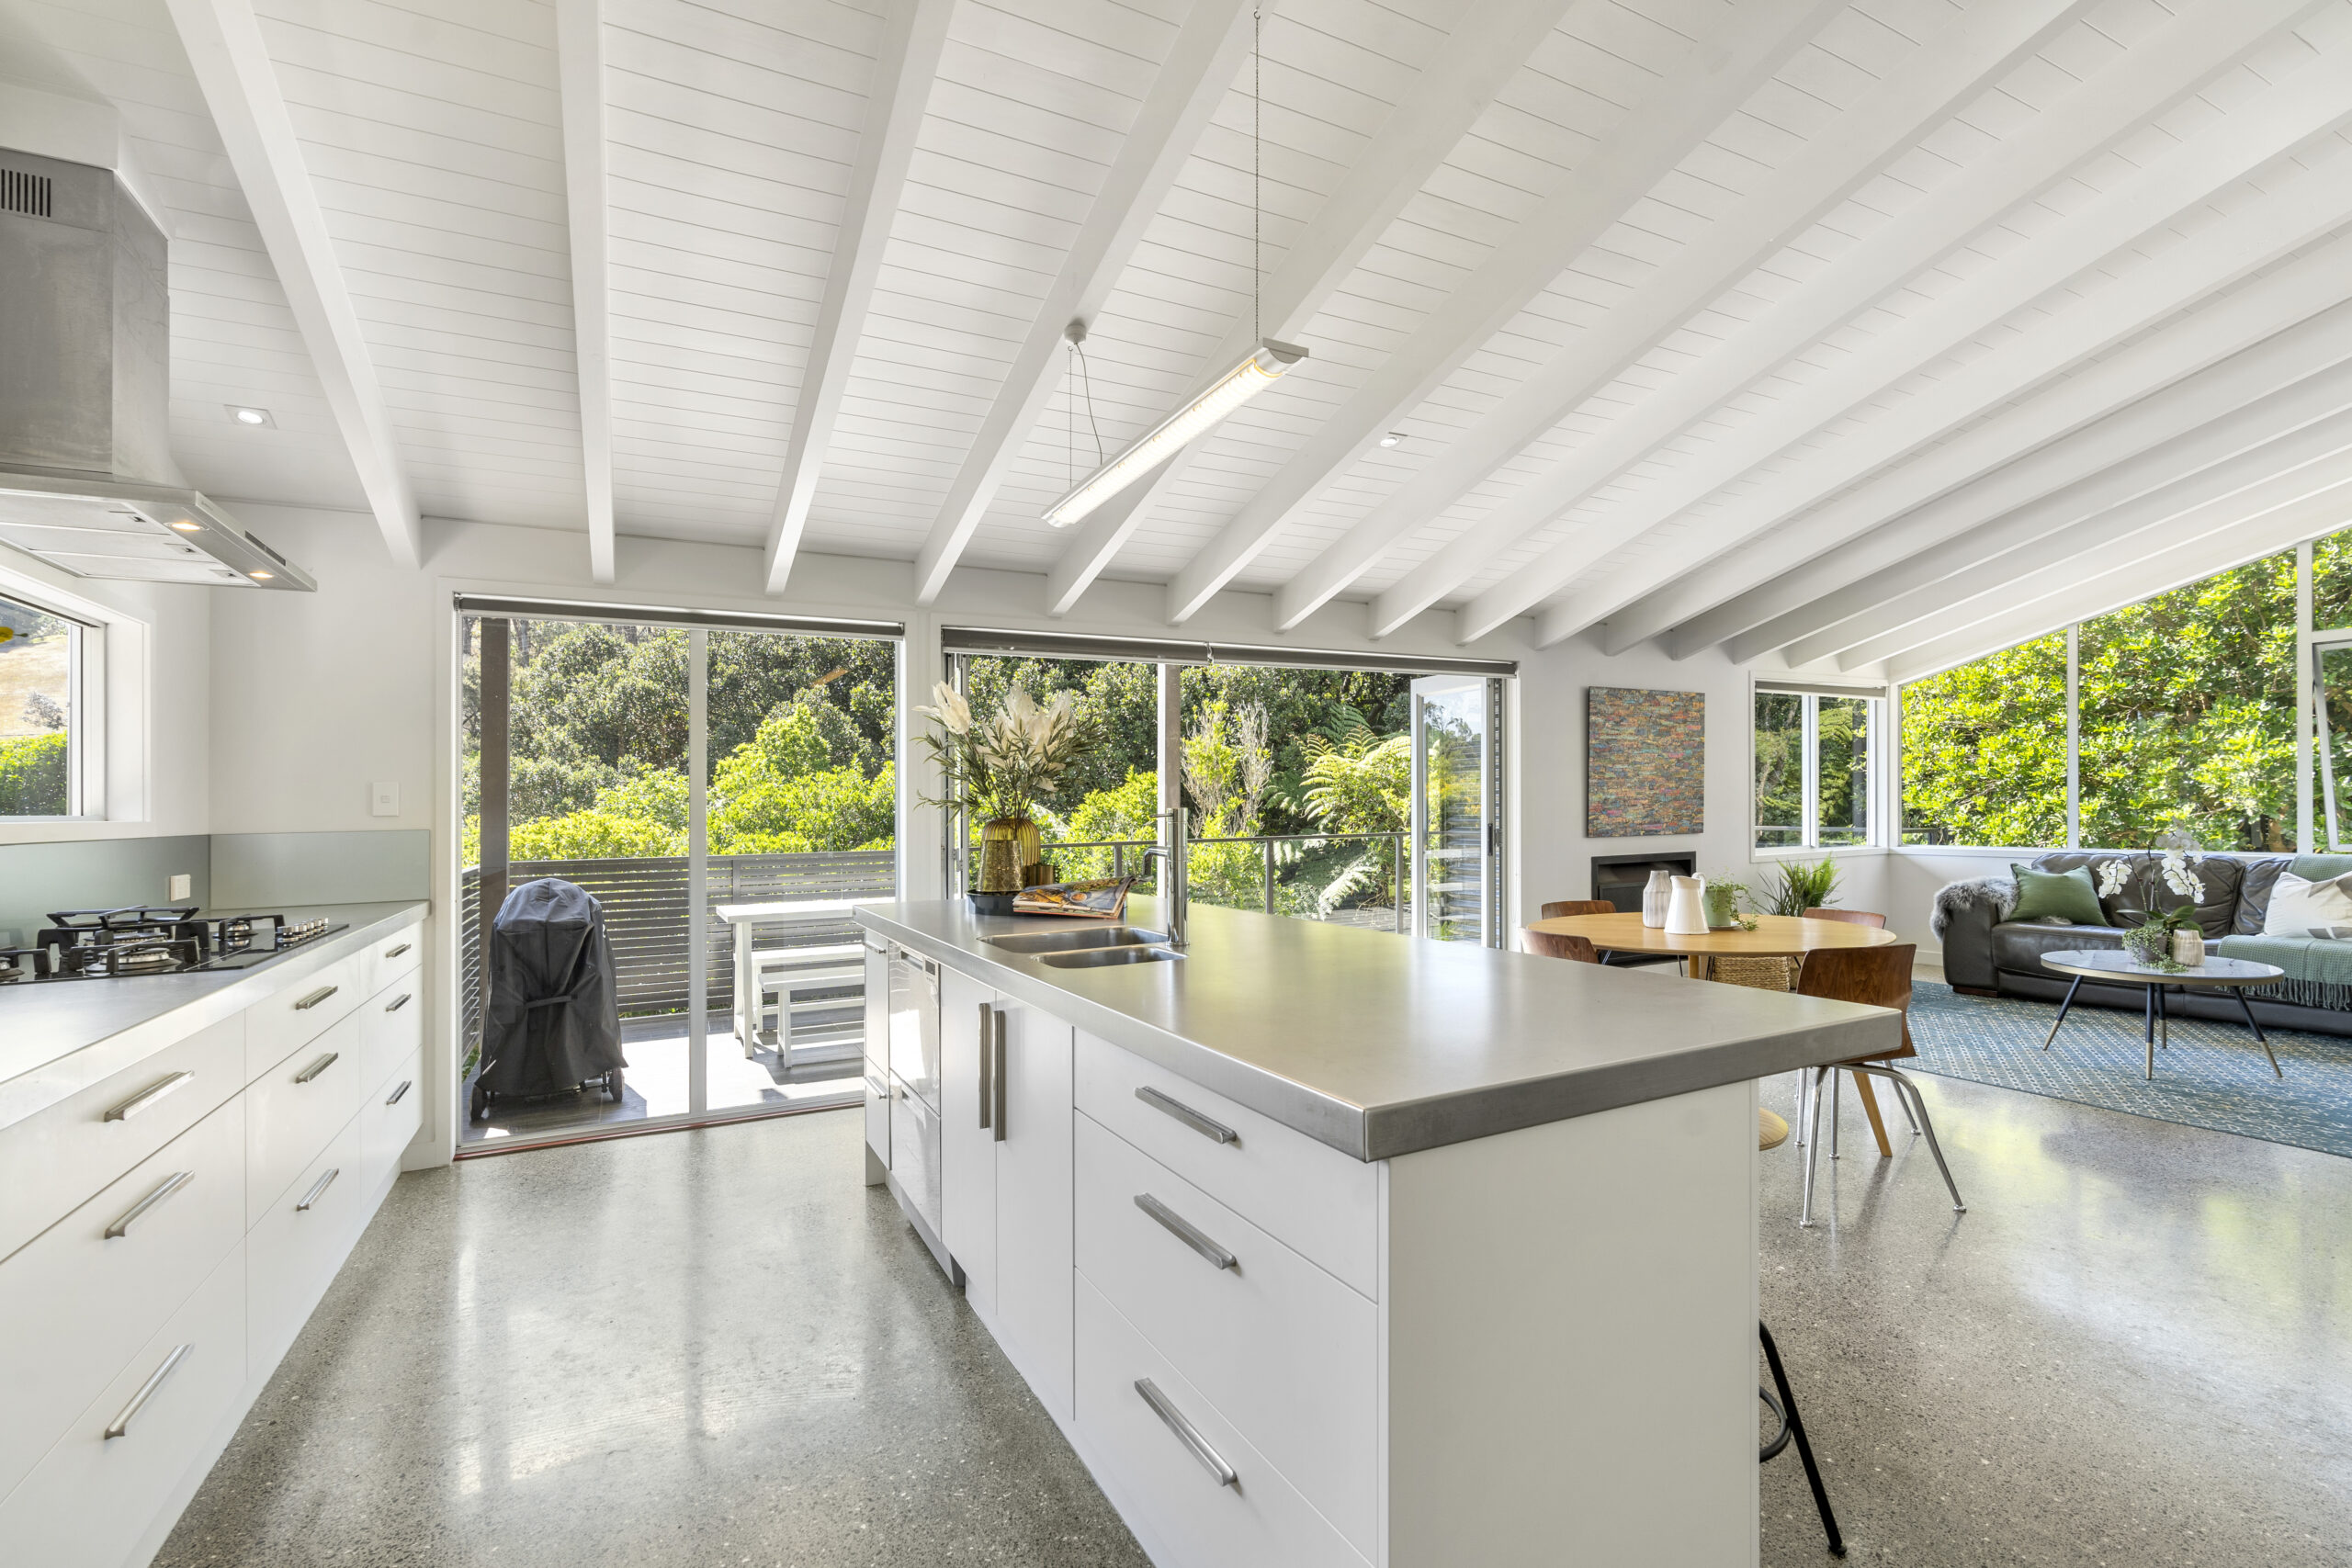 20.-Kitchen-to-verandah-and-lounge-scaled.jpg